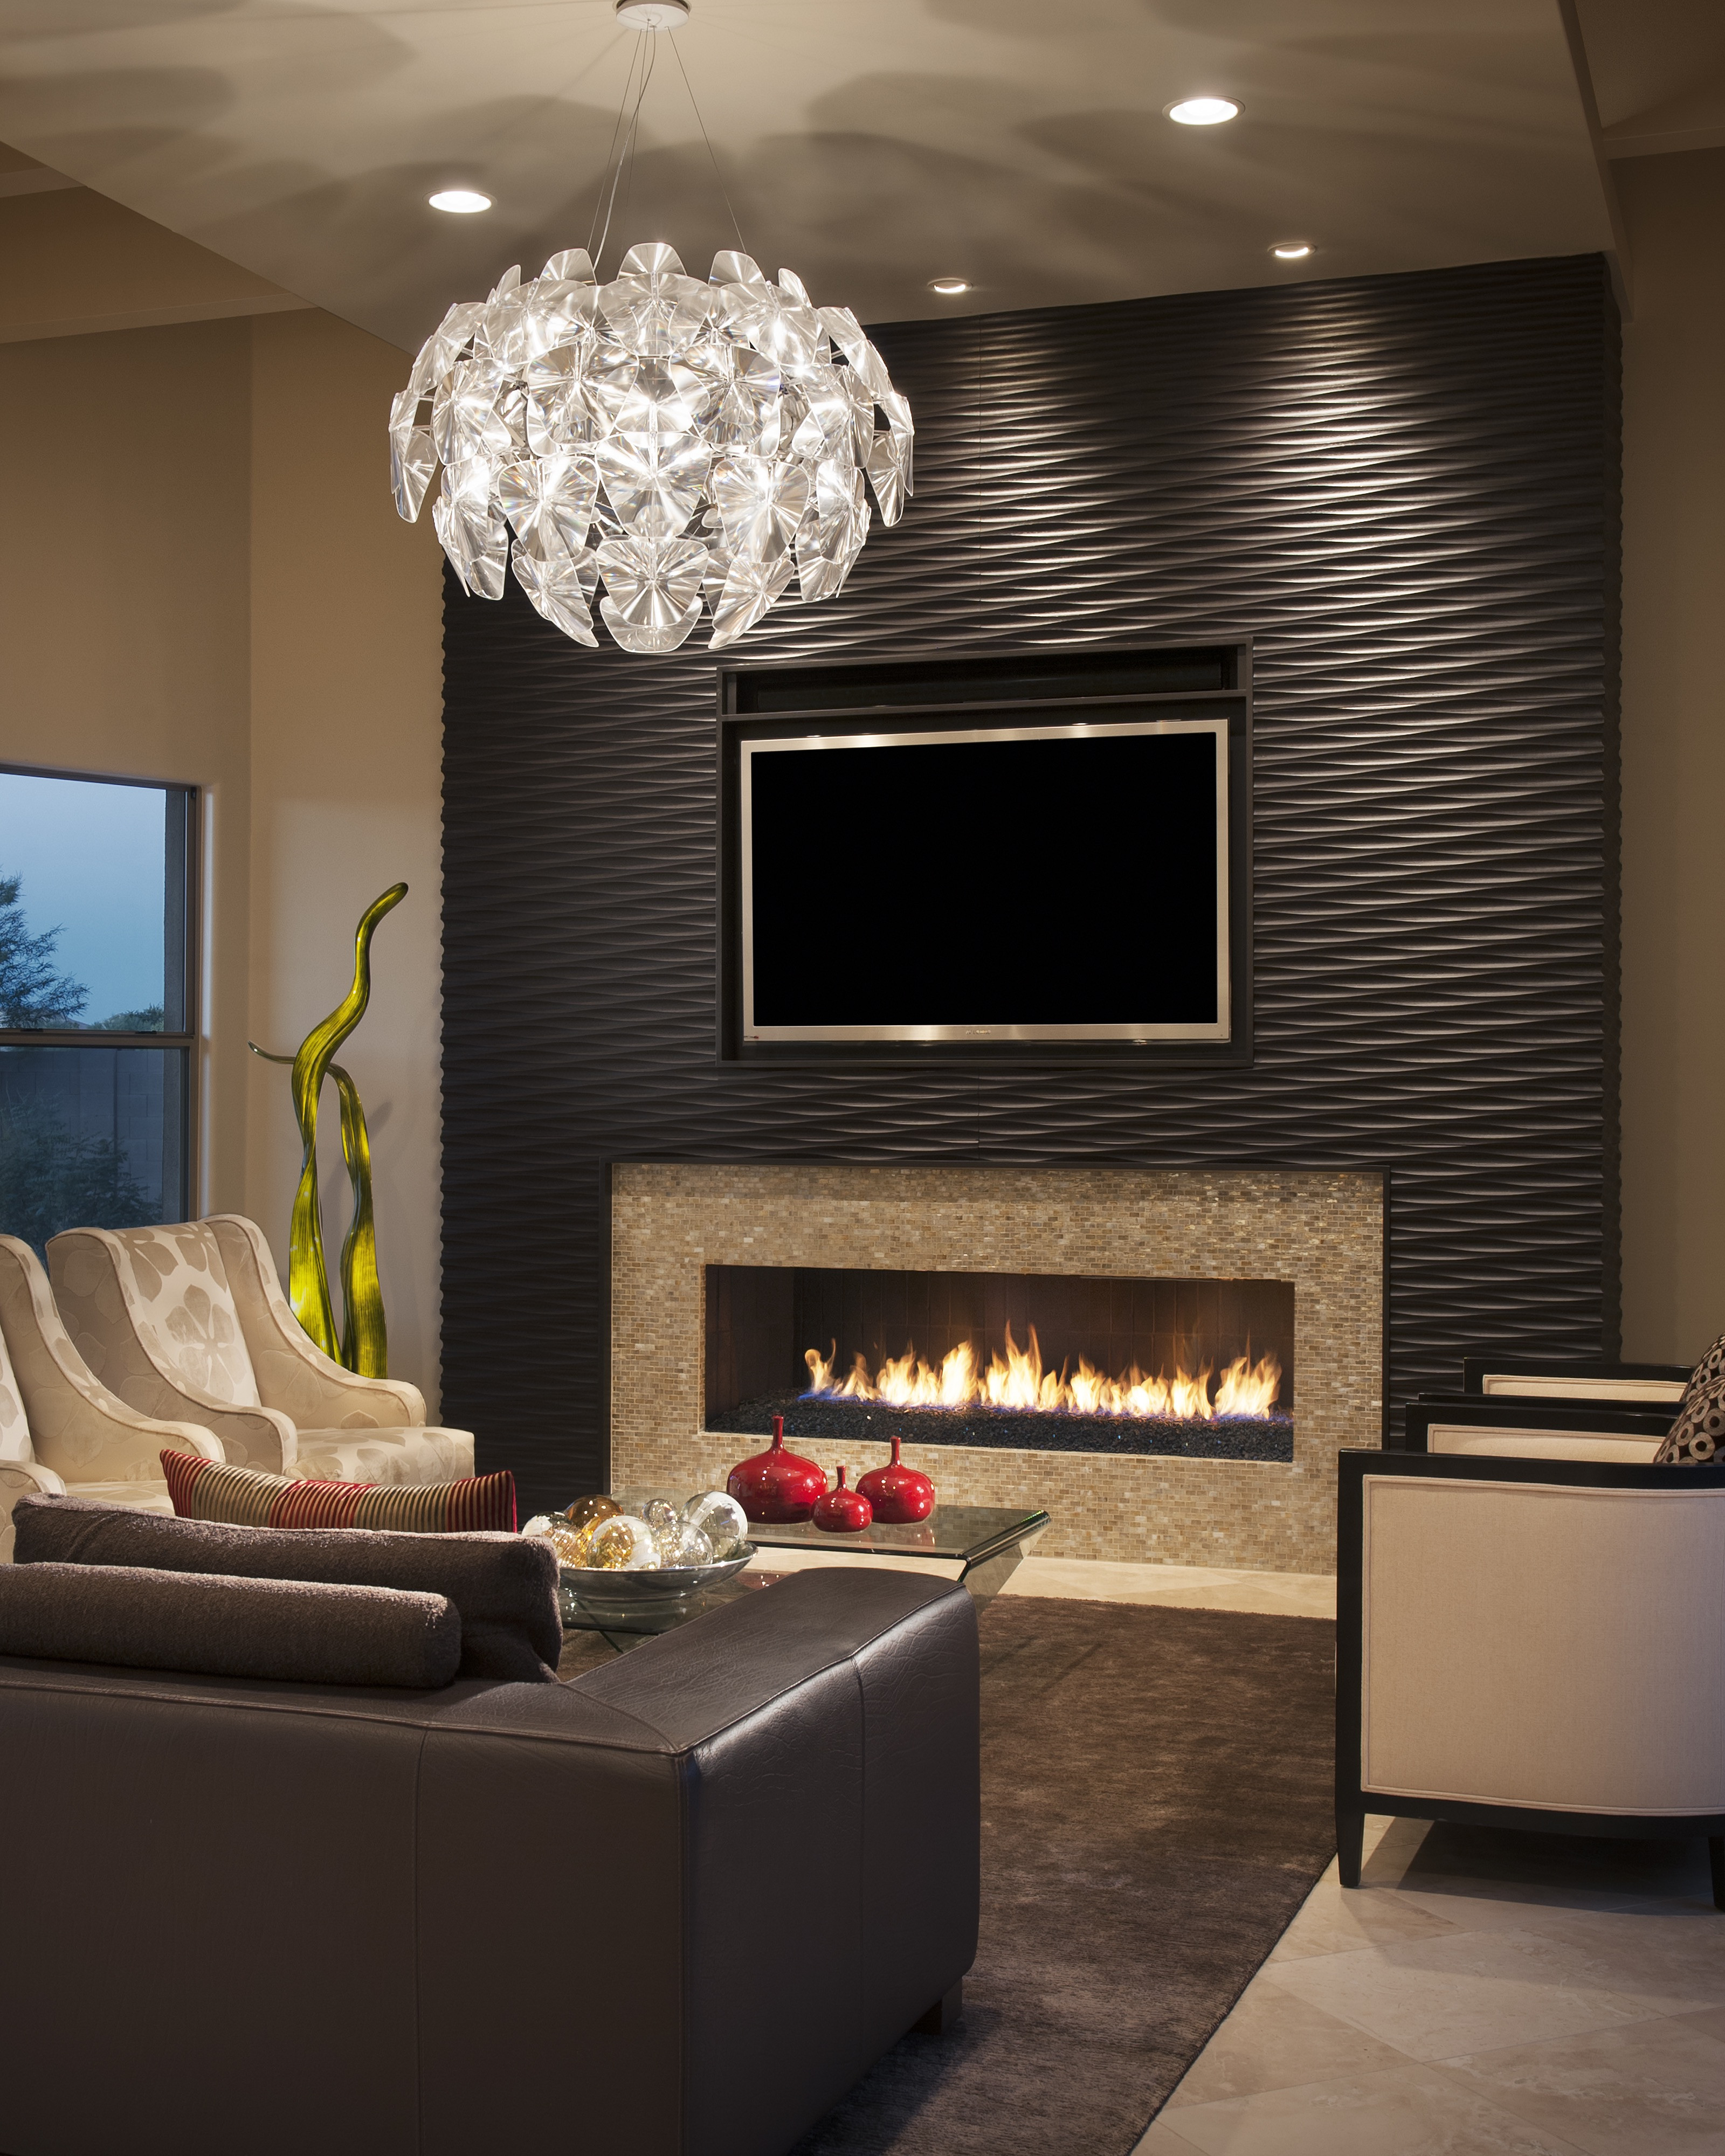 Best ideas about Accent Wall Decor . Save or Pin 30 Beautiful Ideas For Living Room Wall Decor Now.